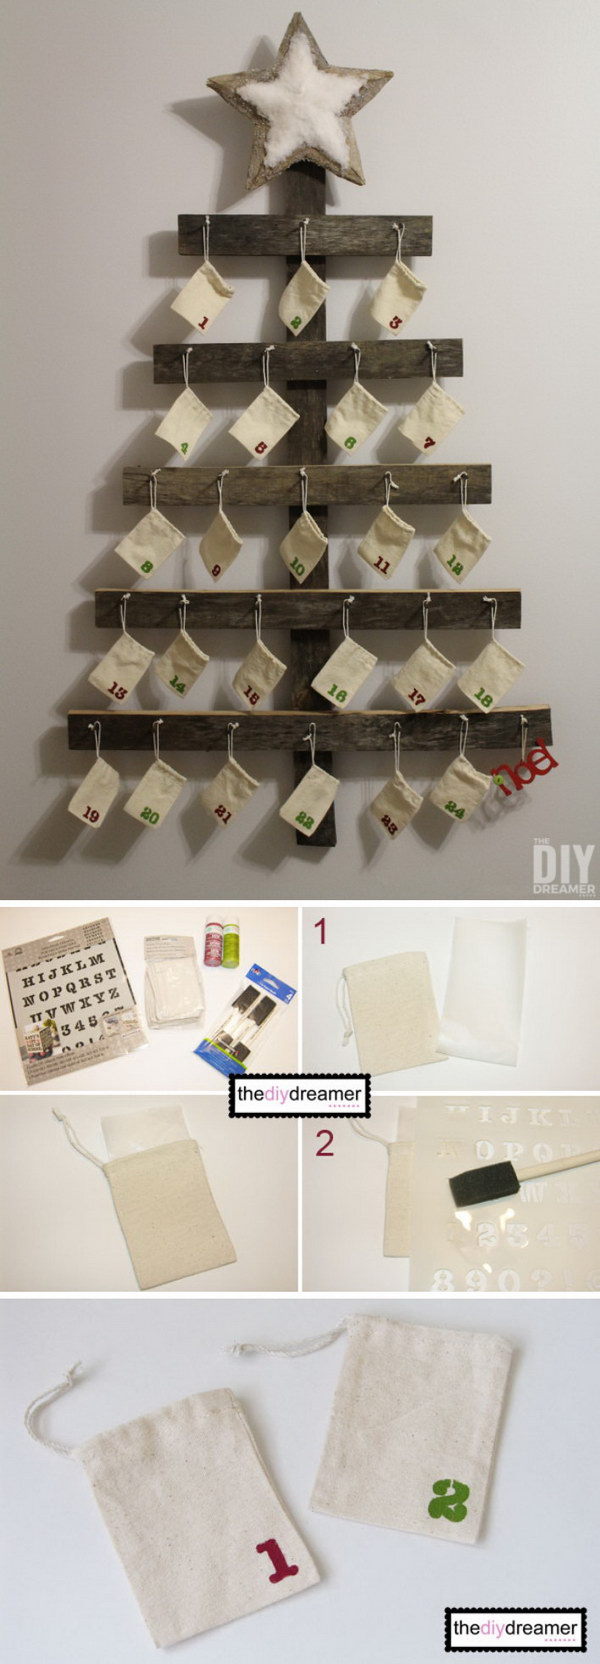 59 Incredibly Simple Rustic Décor Ideas That Can Make Your: 25 DIY Rustic Christmas Decoration Ideas & Tutorials 2017